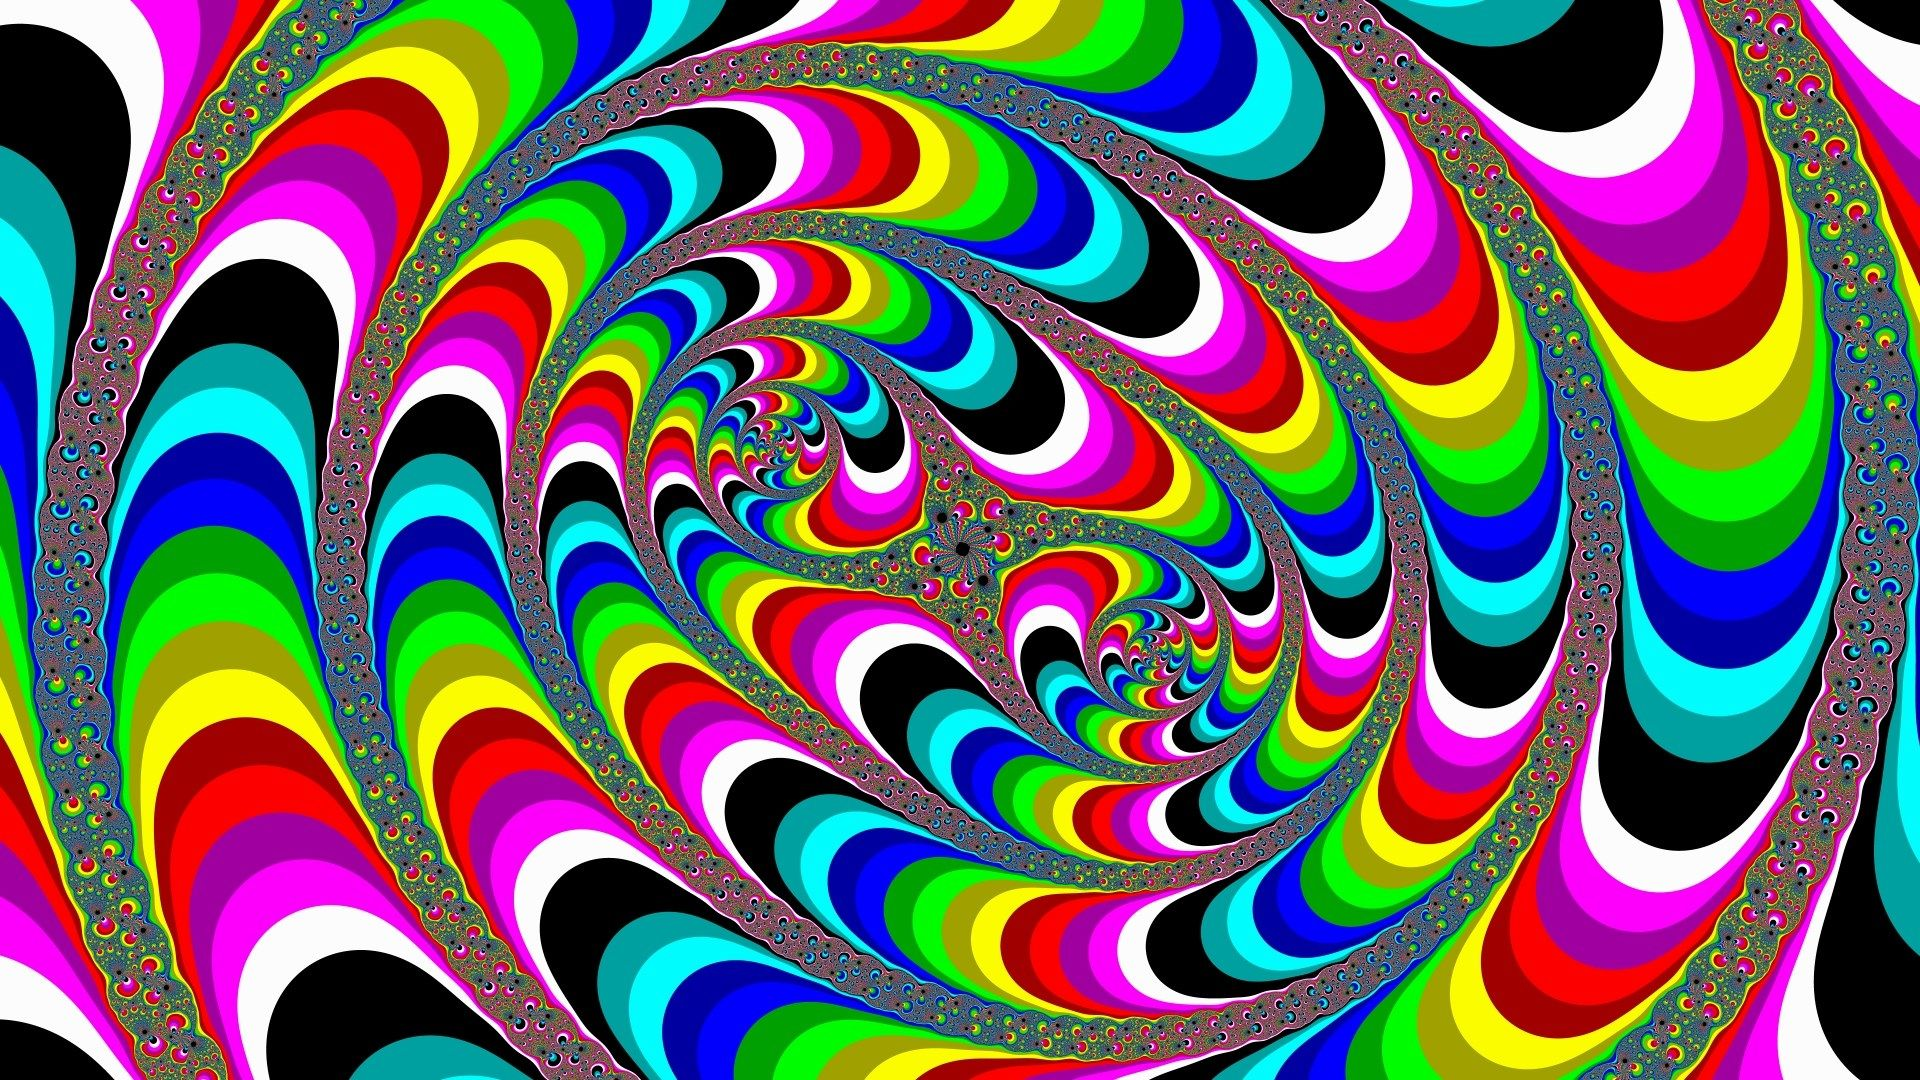 psychedelic free hd widescreen 1920x1080 (With images